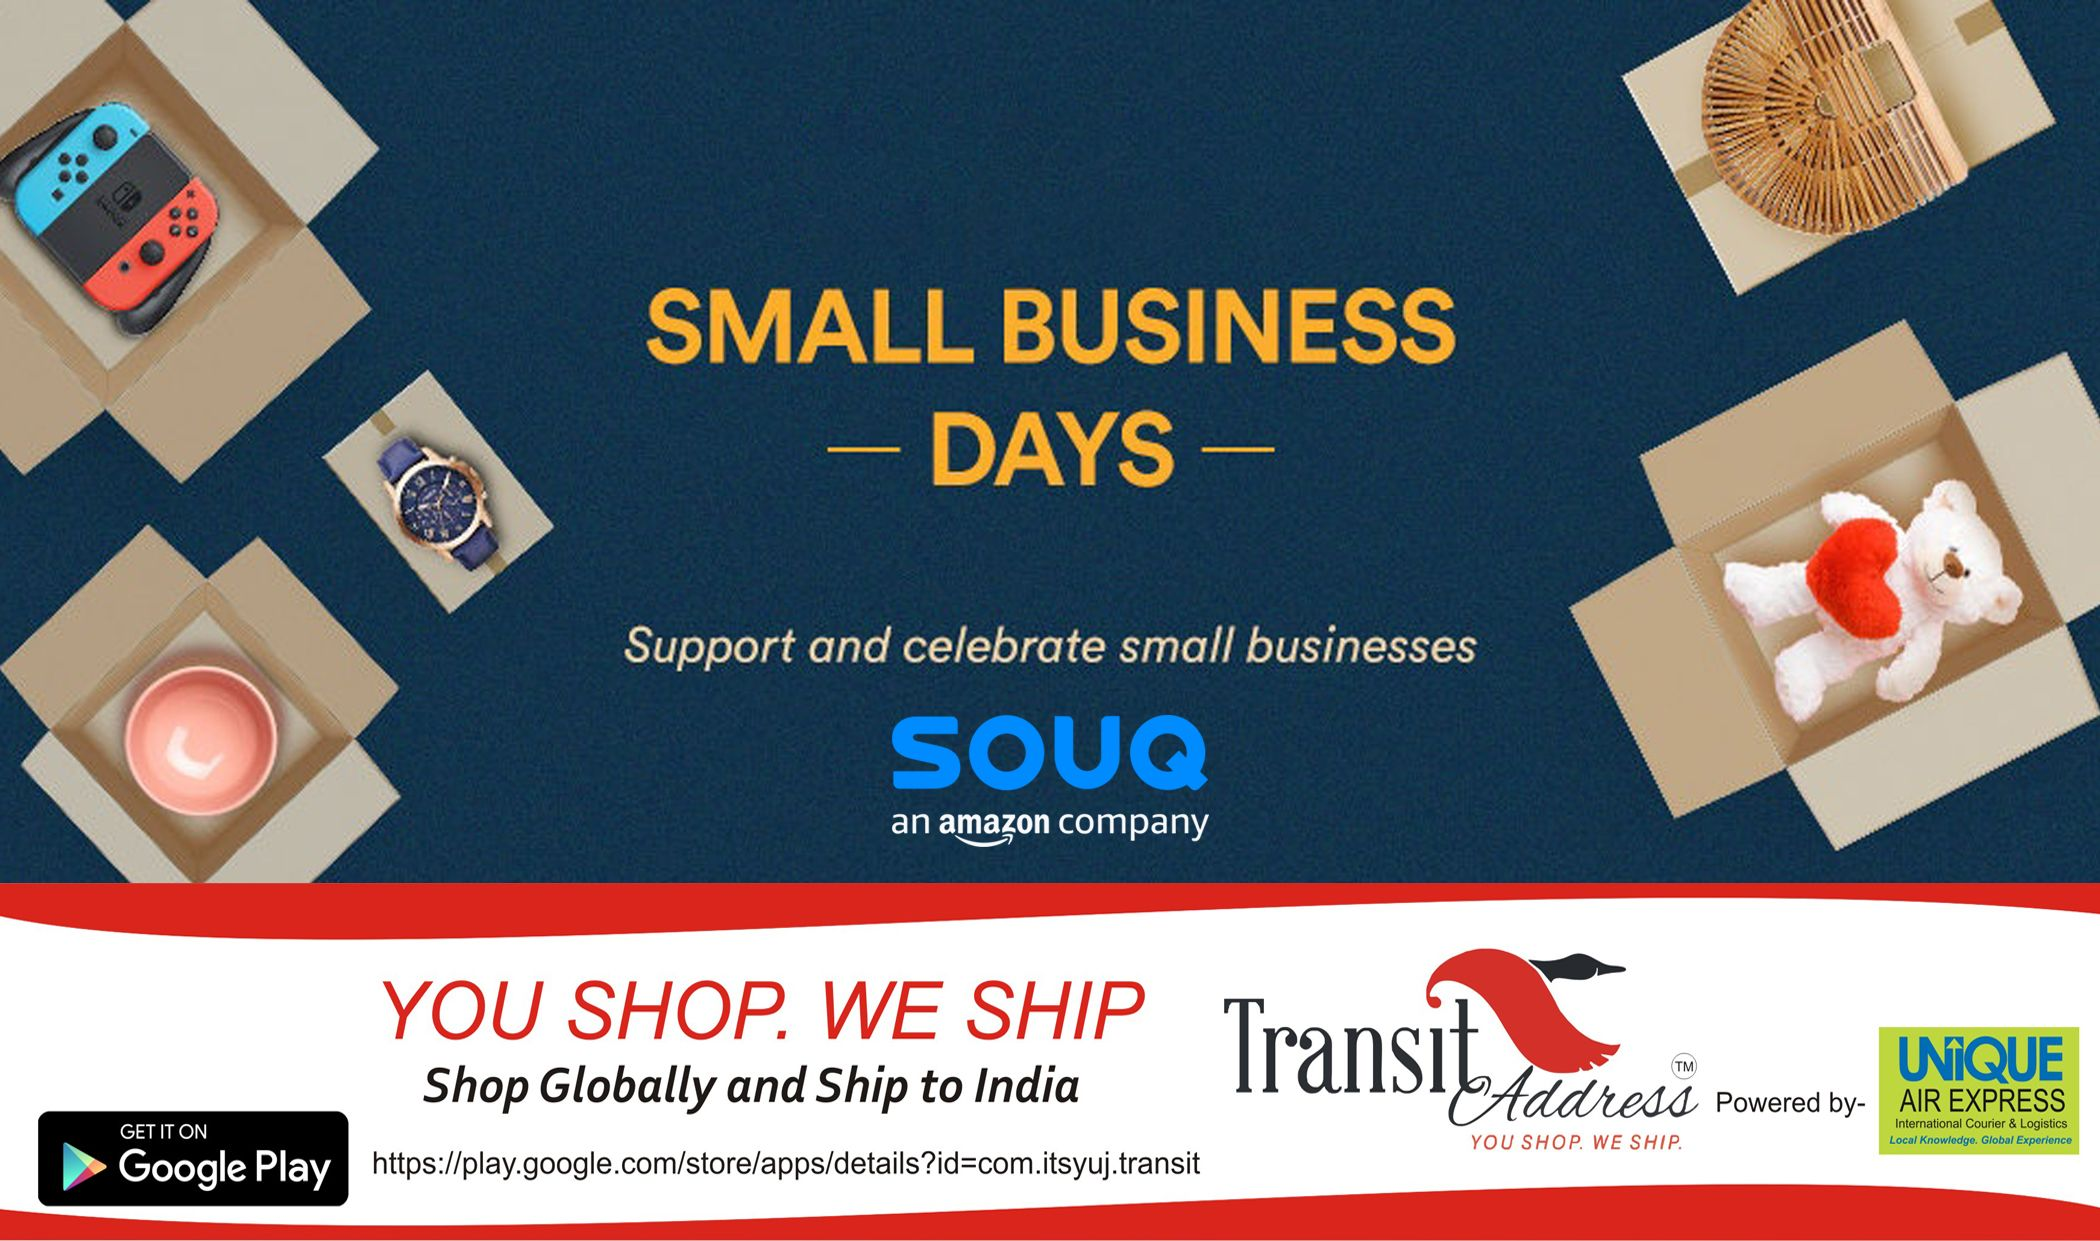 Small Business Days Starts Now! Support and Celebrate Small